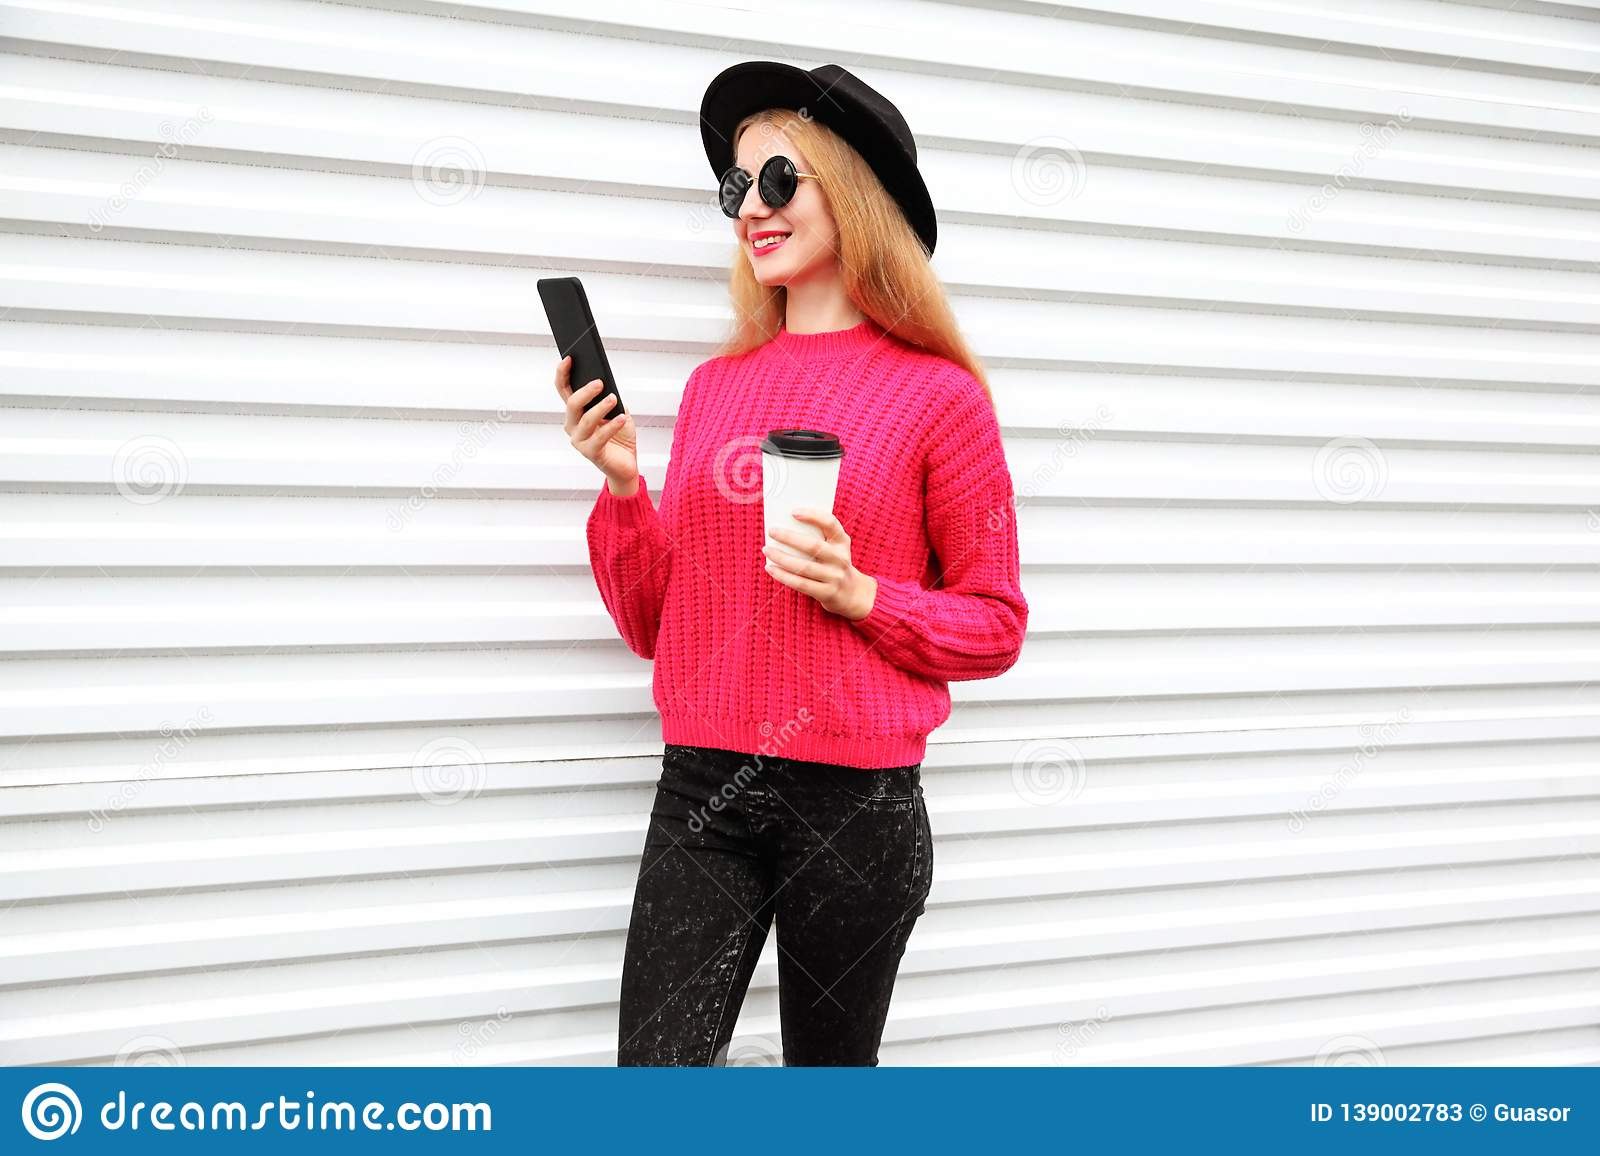 Stylish happy woman looking at phone holding coffee cup, female model wearing black round hat, pink knitted sweater in city